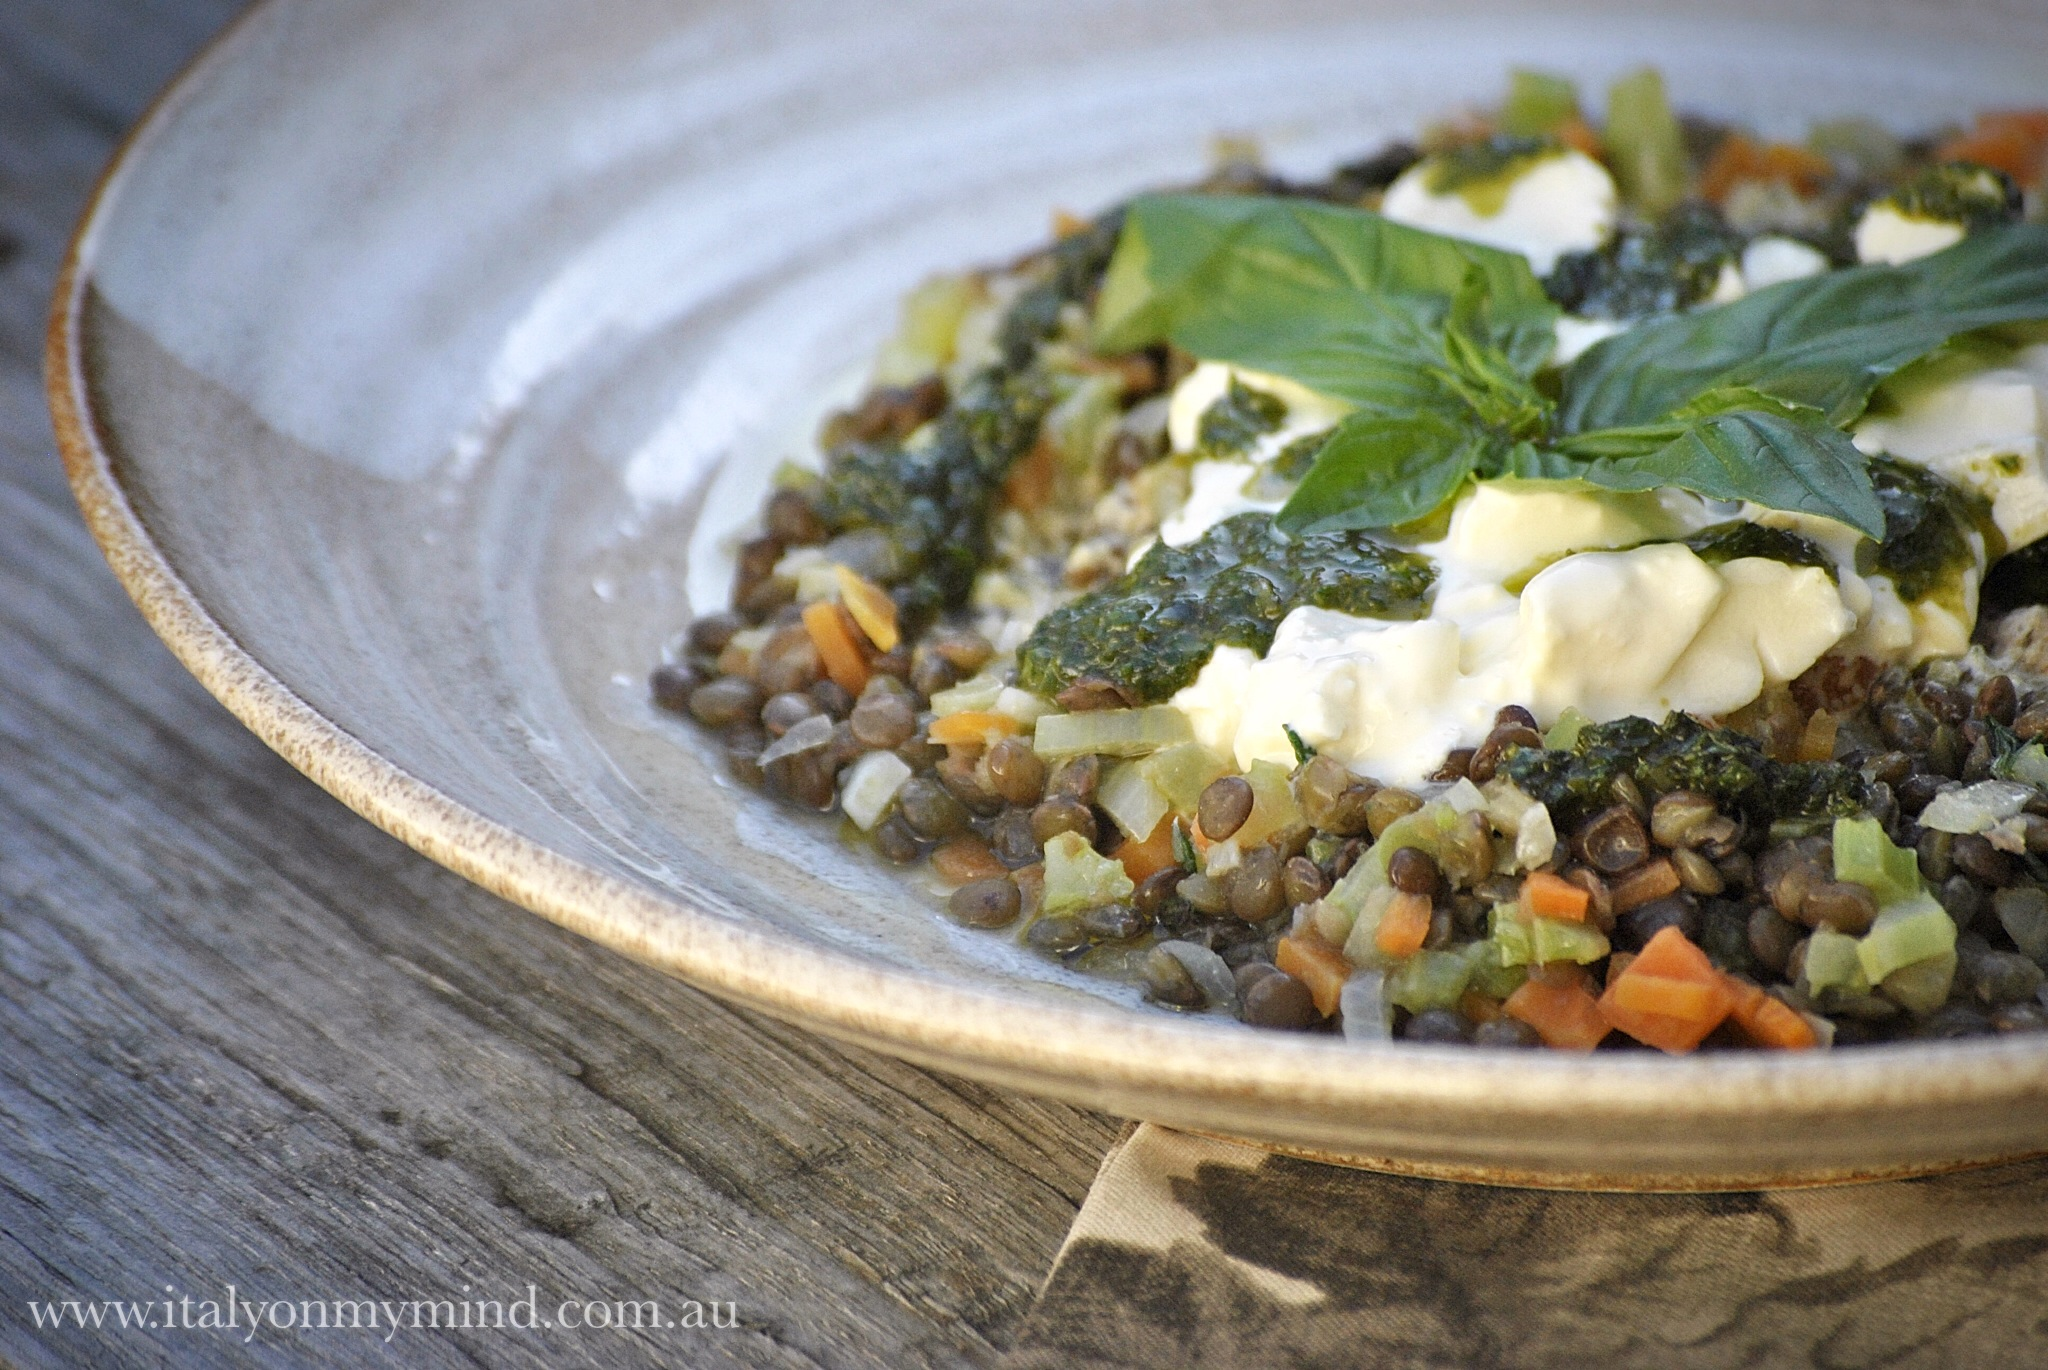 Burrata with lentils and basil oil